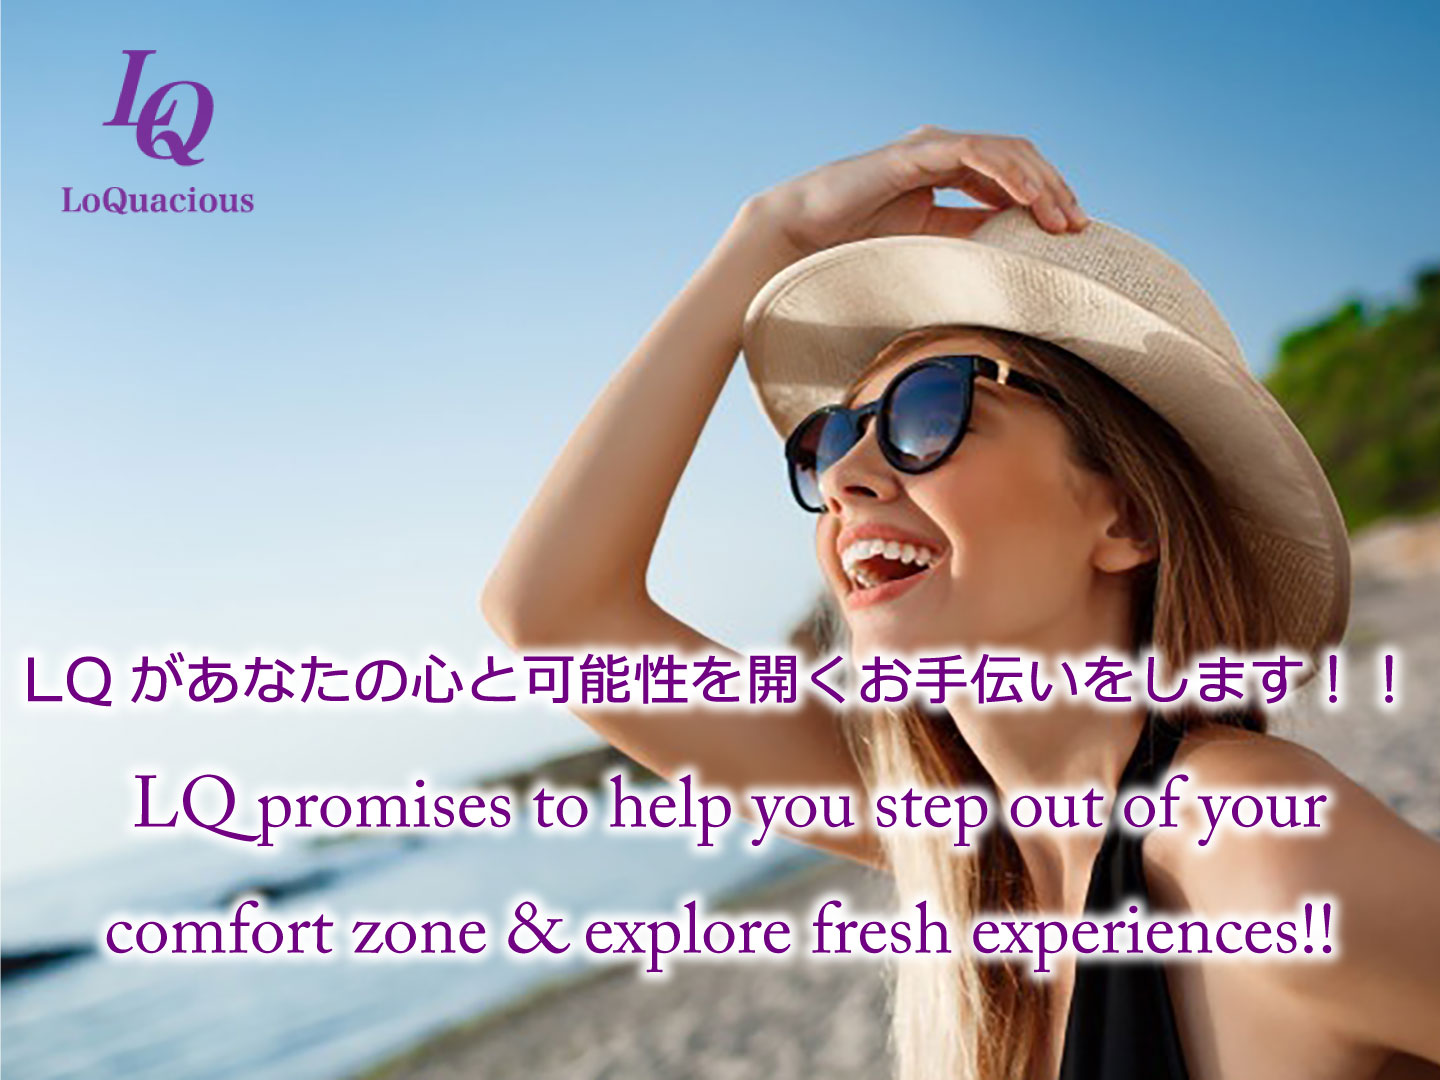 LQ promises to help you step out of your comfort zone and explore fresh experiences!!